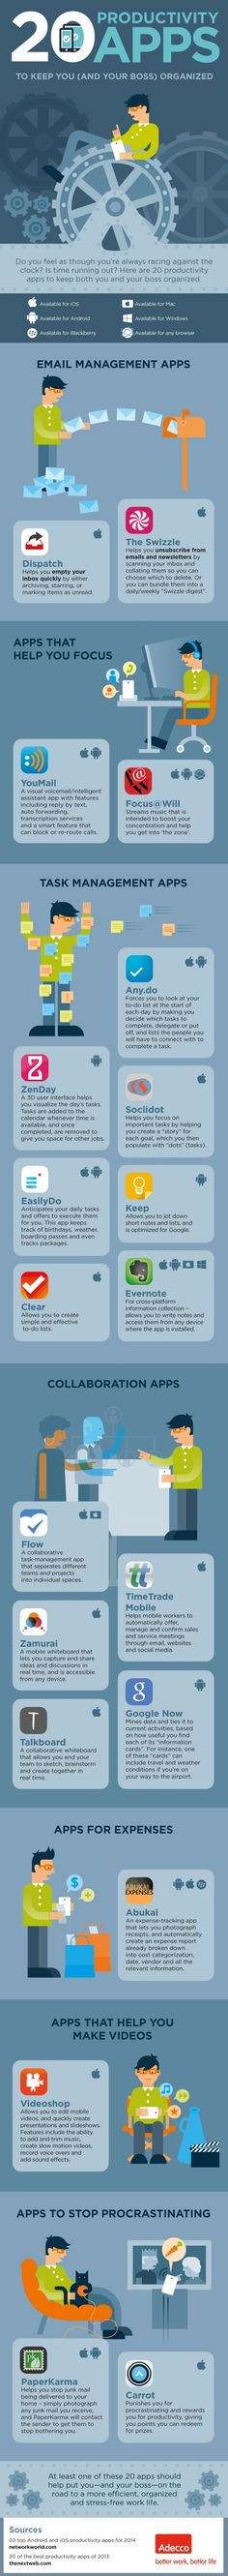 20 Productivity Apps To Keep You (And Your Boss) Organized --shared by Neomam on Jul 11, 2014 - See more at: http://punktat.at